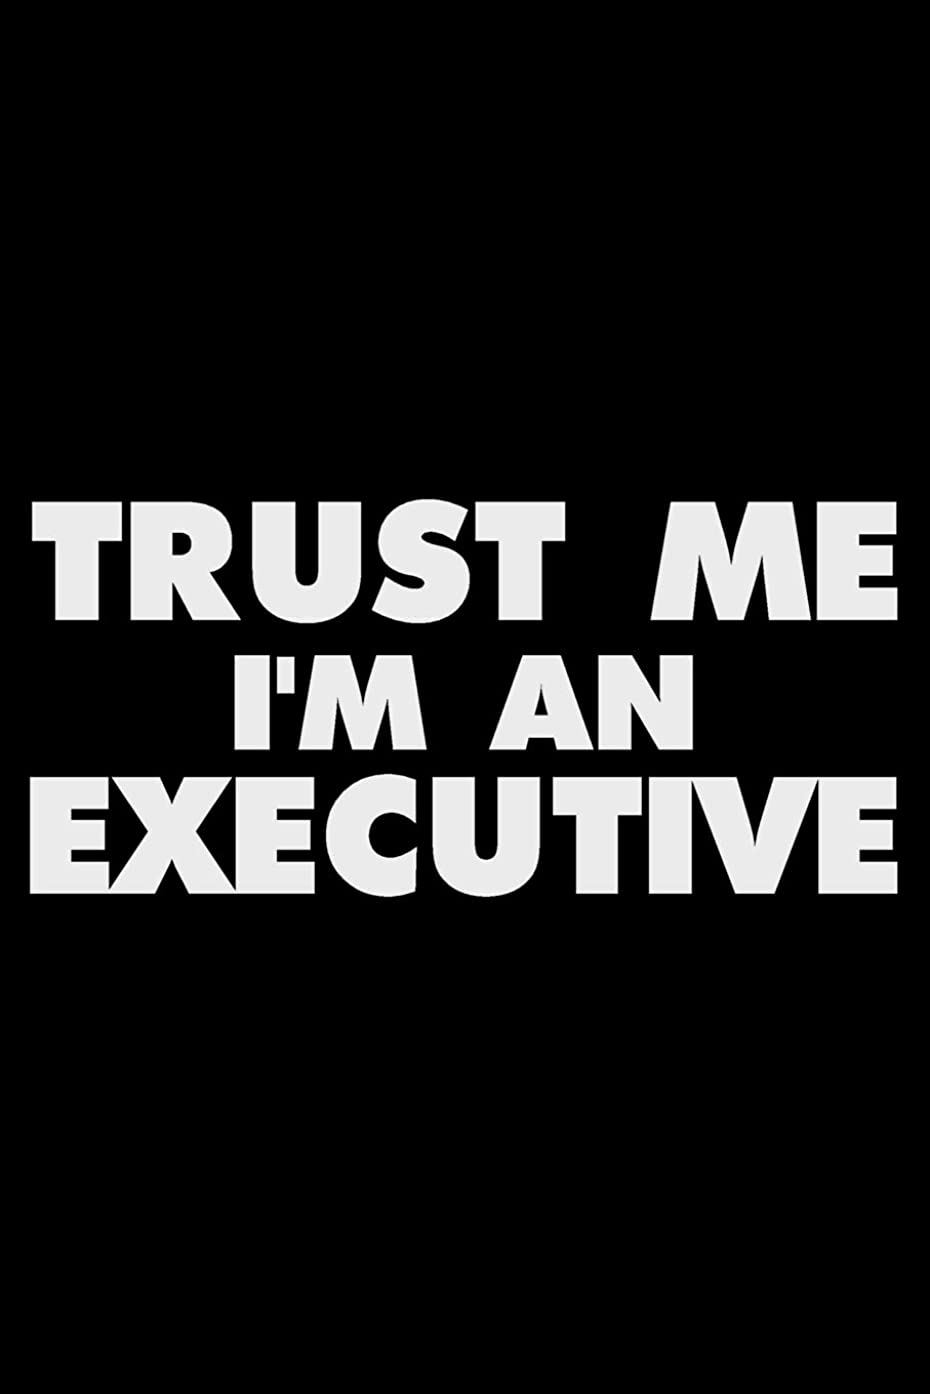 Trust Me I'm An Executive: Funny Writing Notebook, Journal For Work, Daily Diary, Planner, Organizer for Executives, Boss, CEO